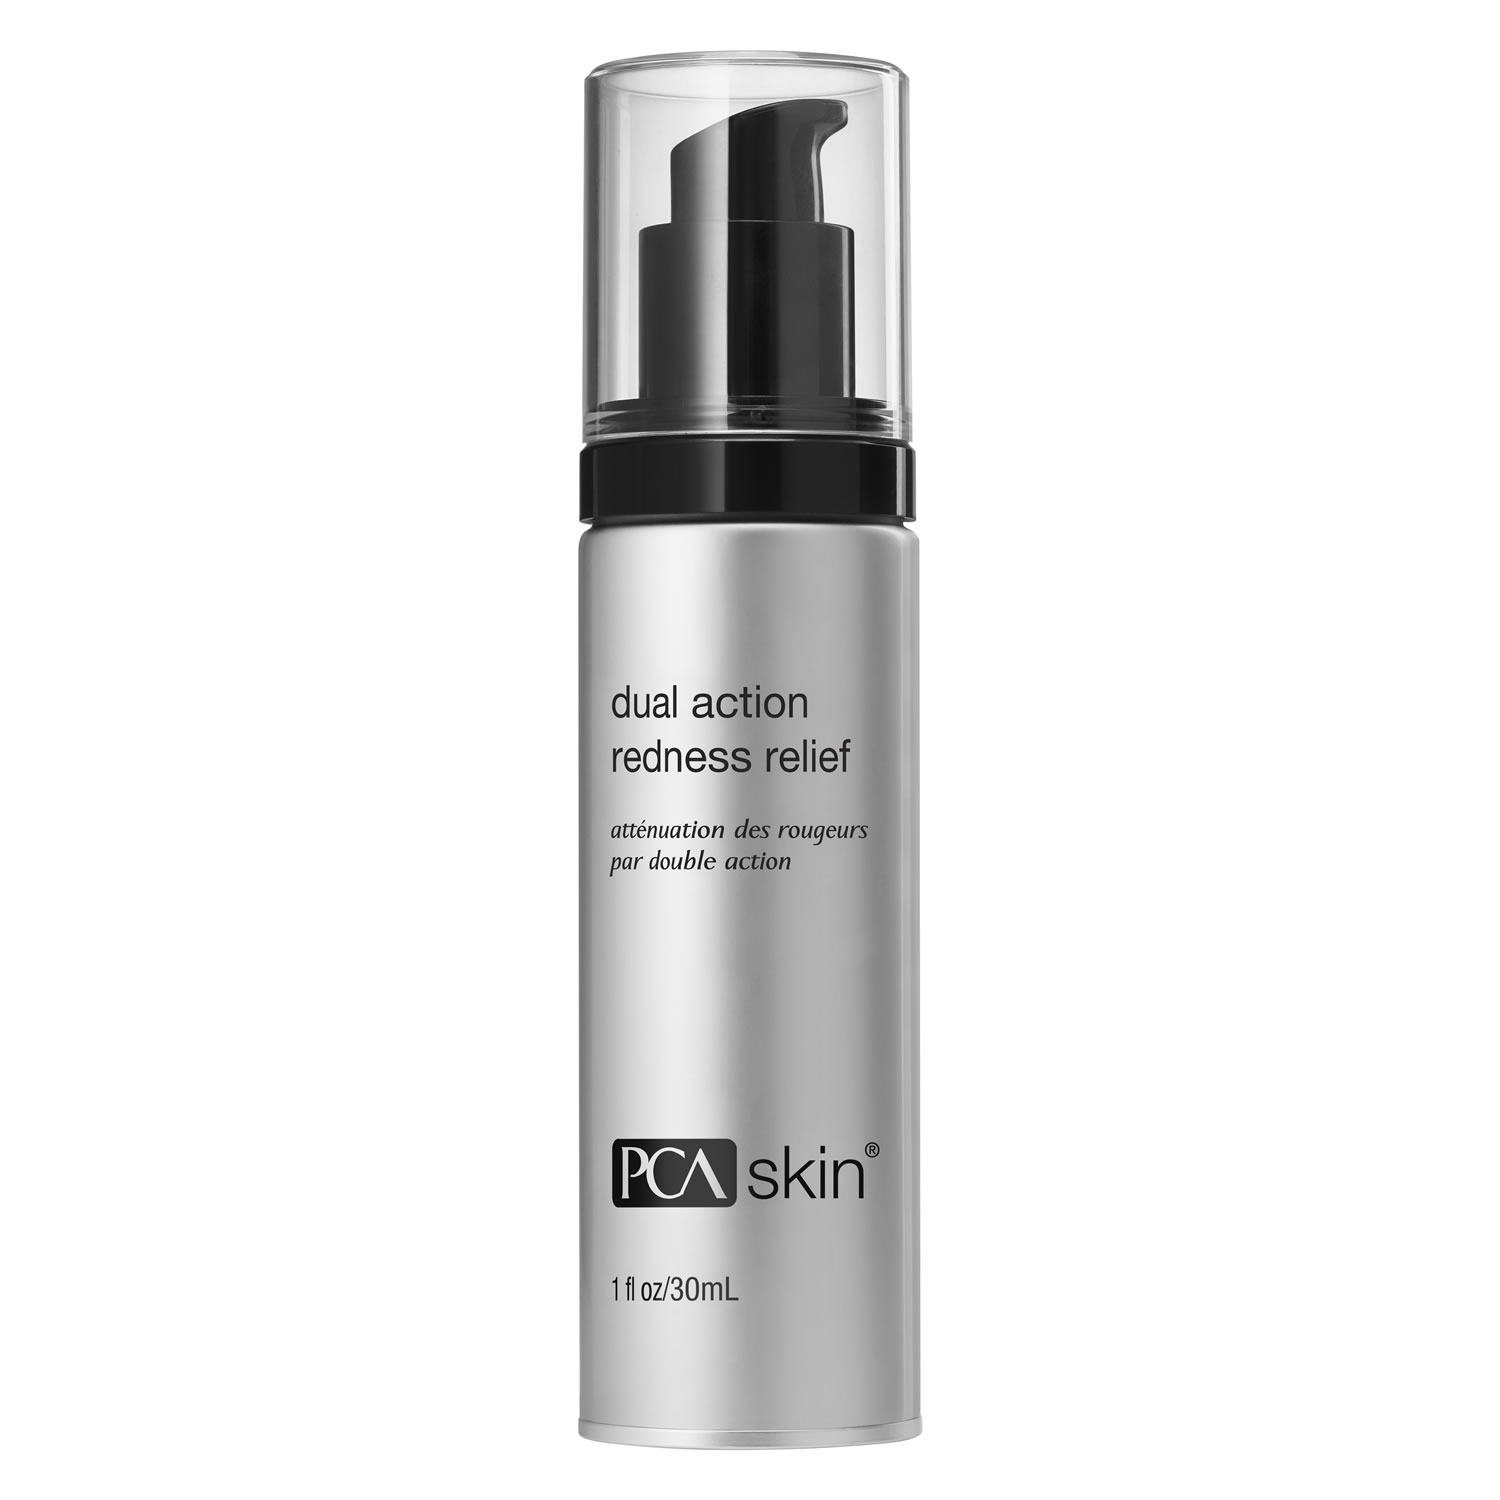 PCA skin dual action redness relief (1.0 oz / 28 g)